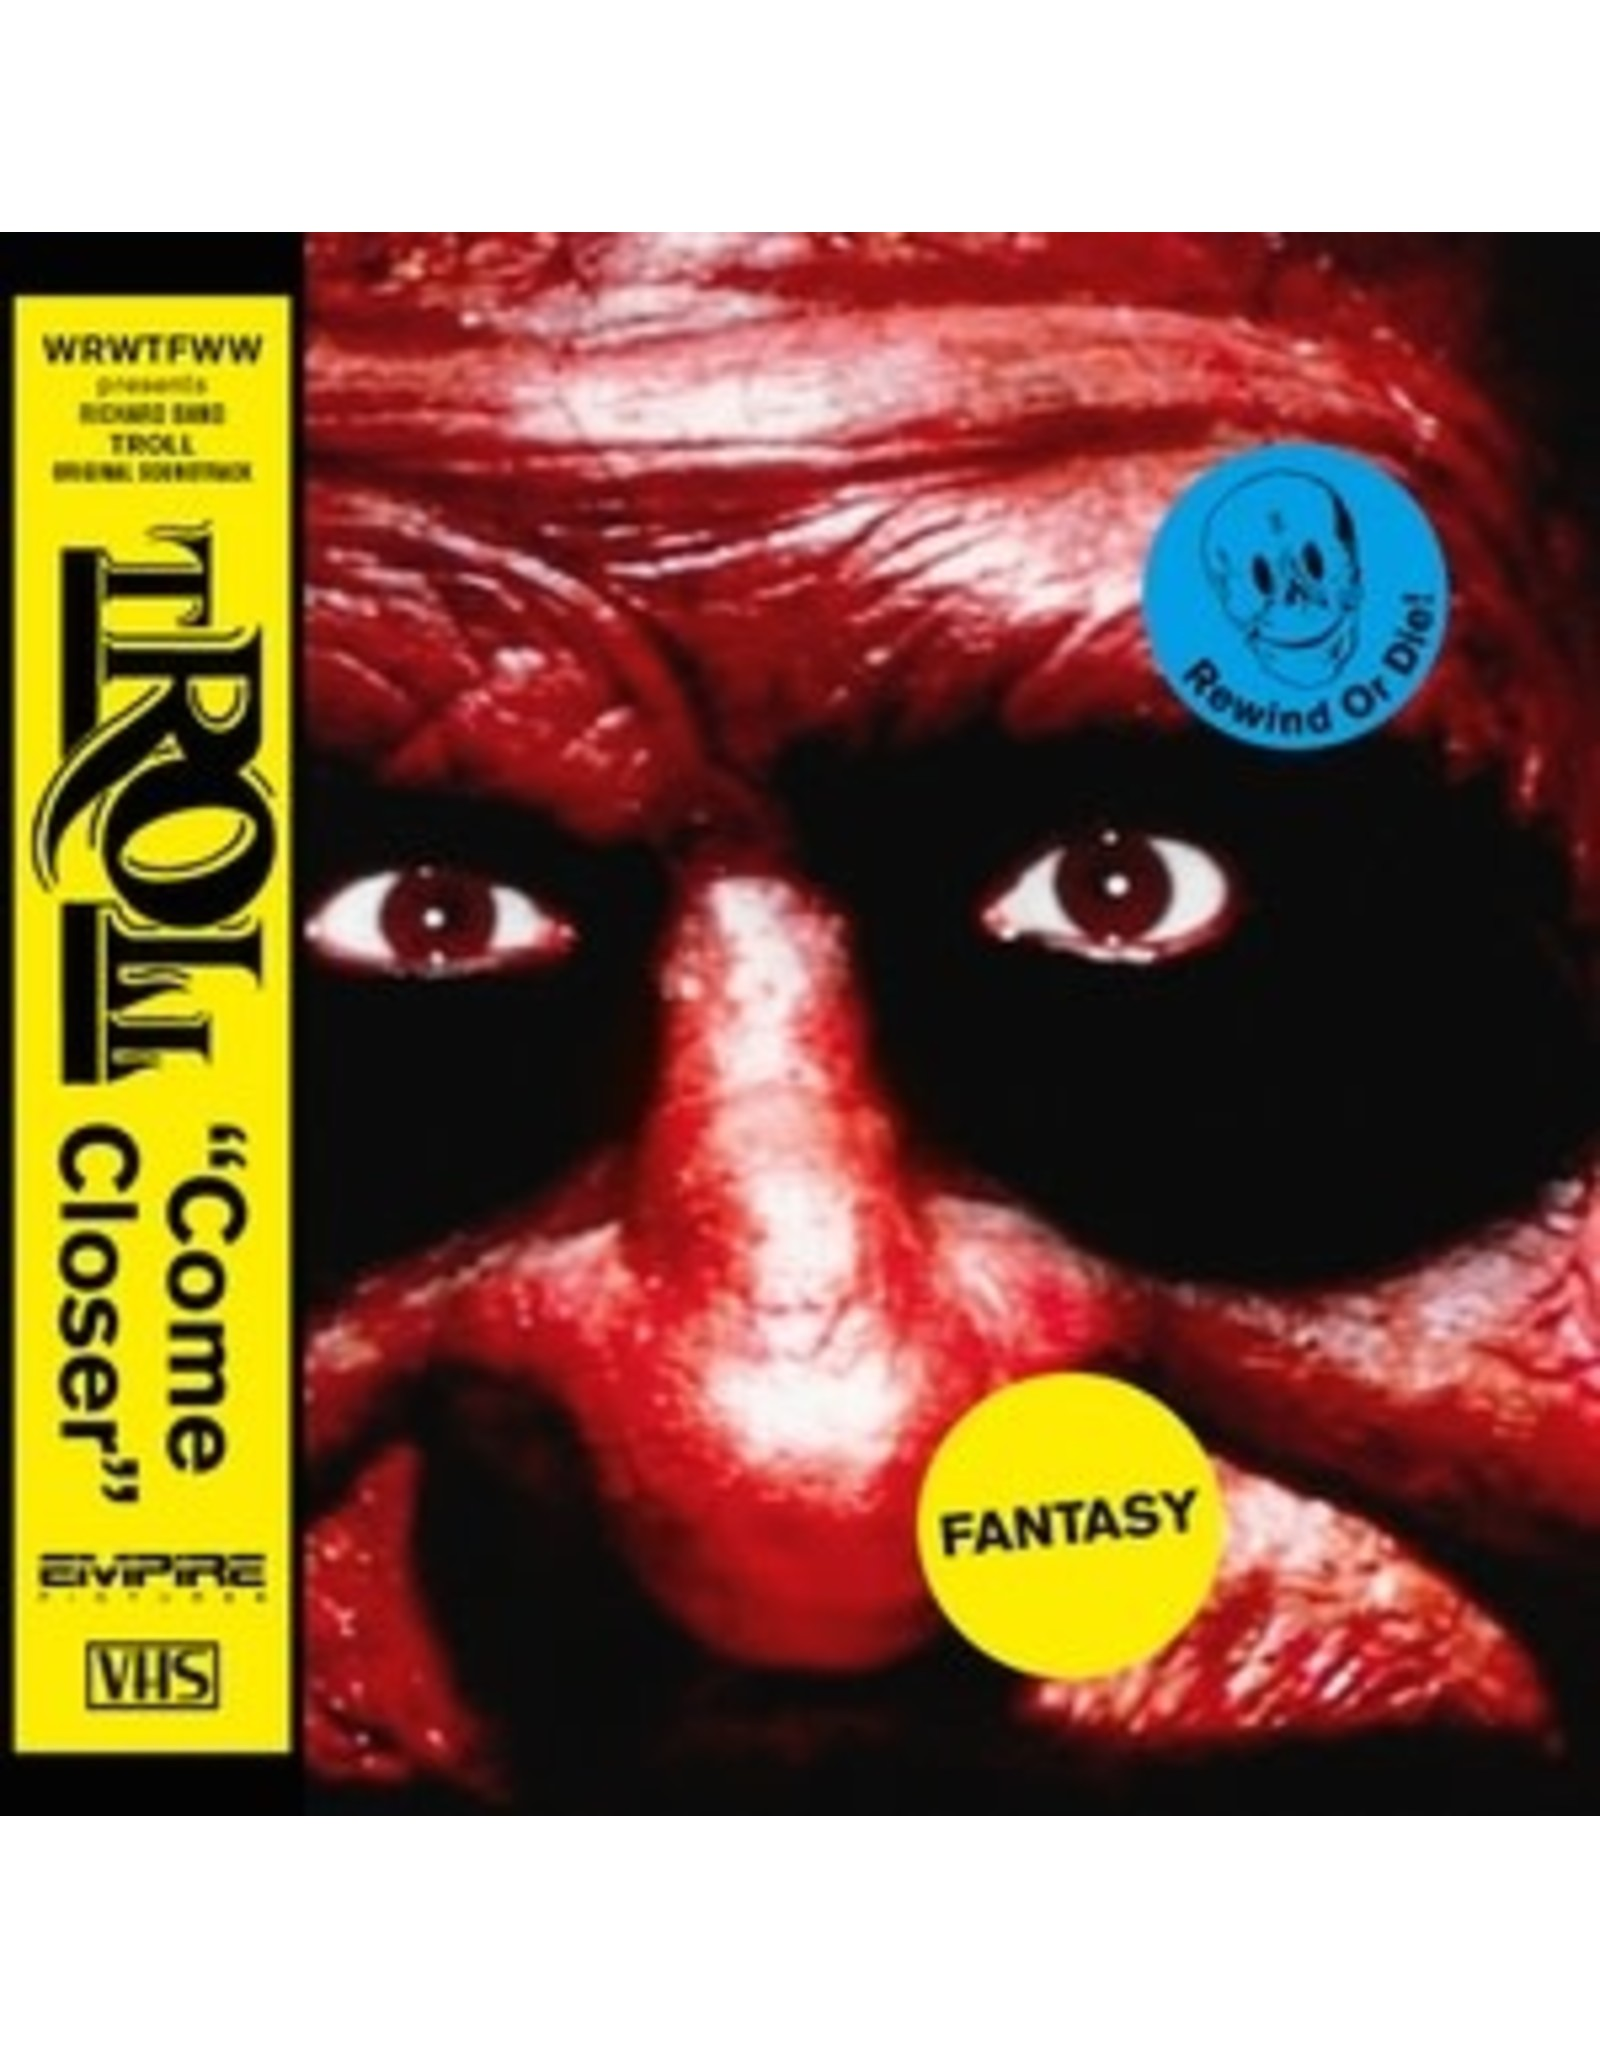 New Vinyl Richard Band - Troll OST LP